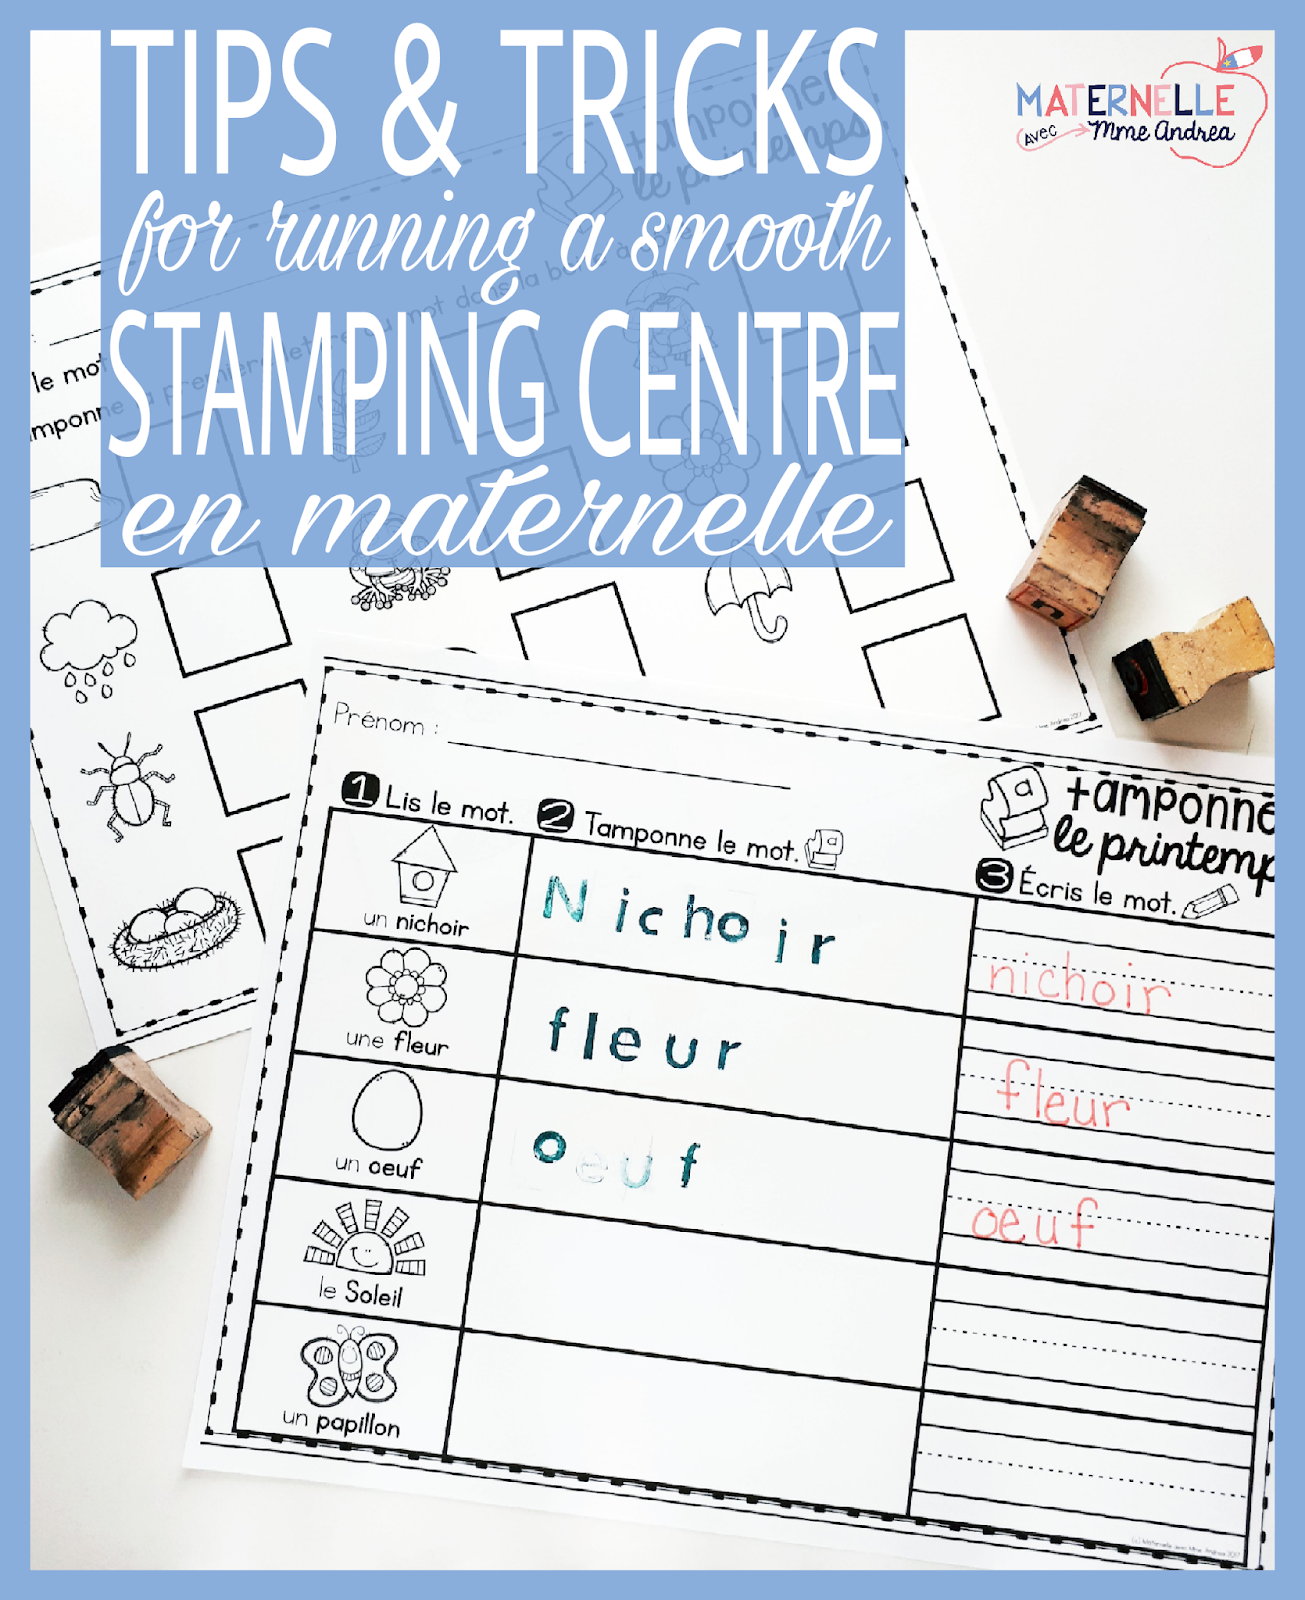 Maternelle avec mme andrea french stamping ideas activities read on to see how i run the stamping centre in my classroom and to hear my tips for keeping things running as smoothly as possible sciox Image collections